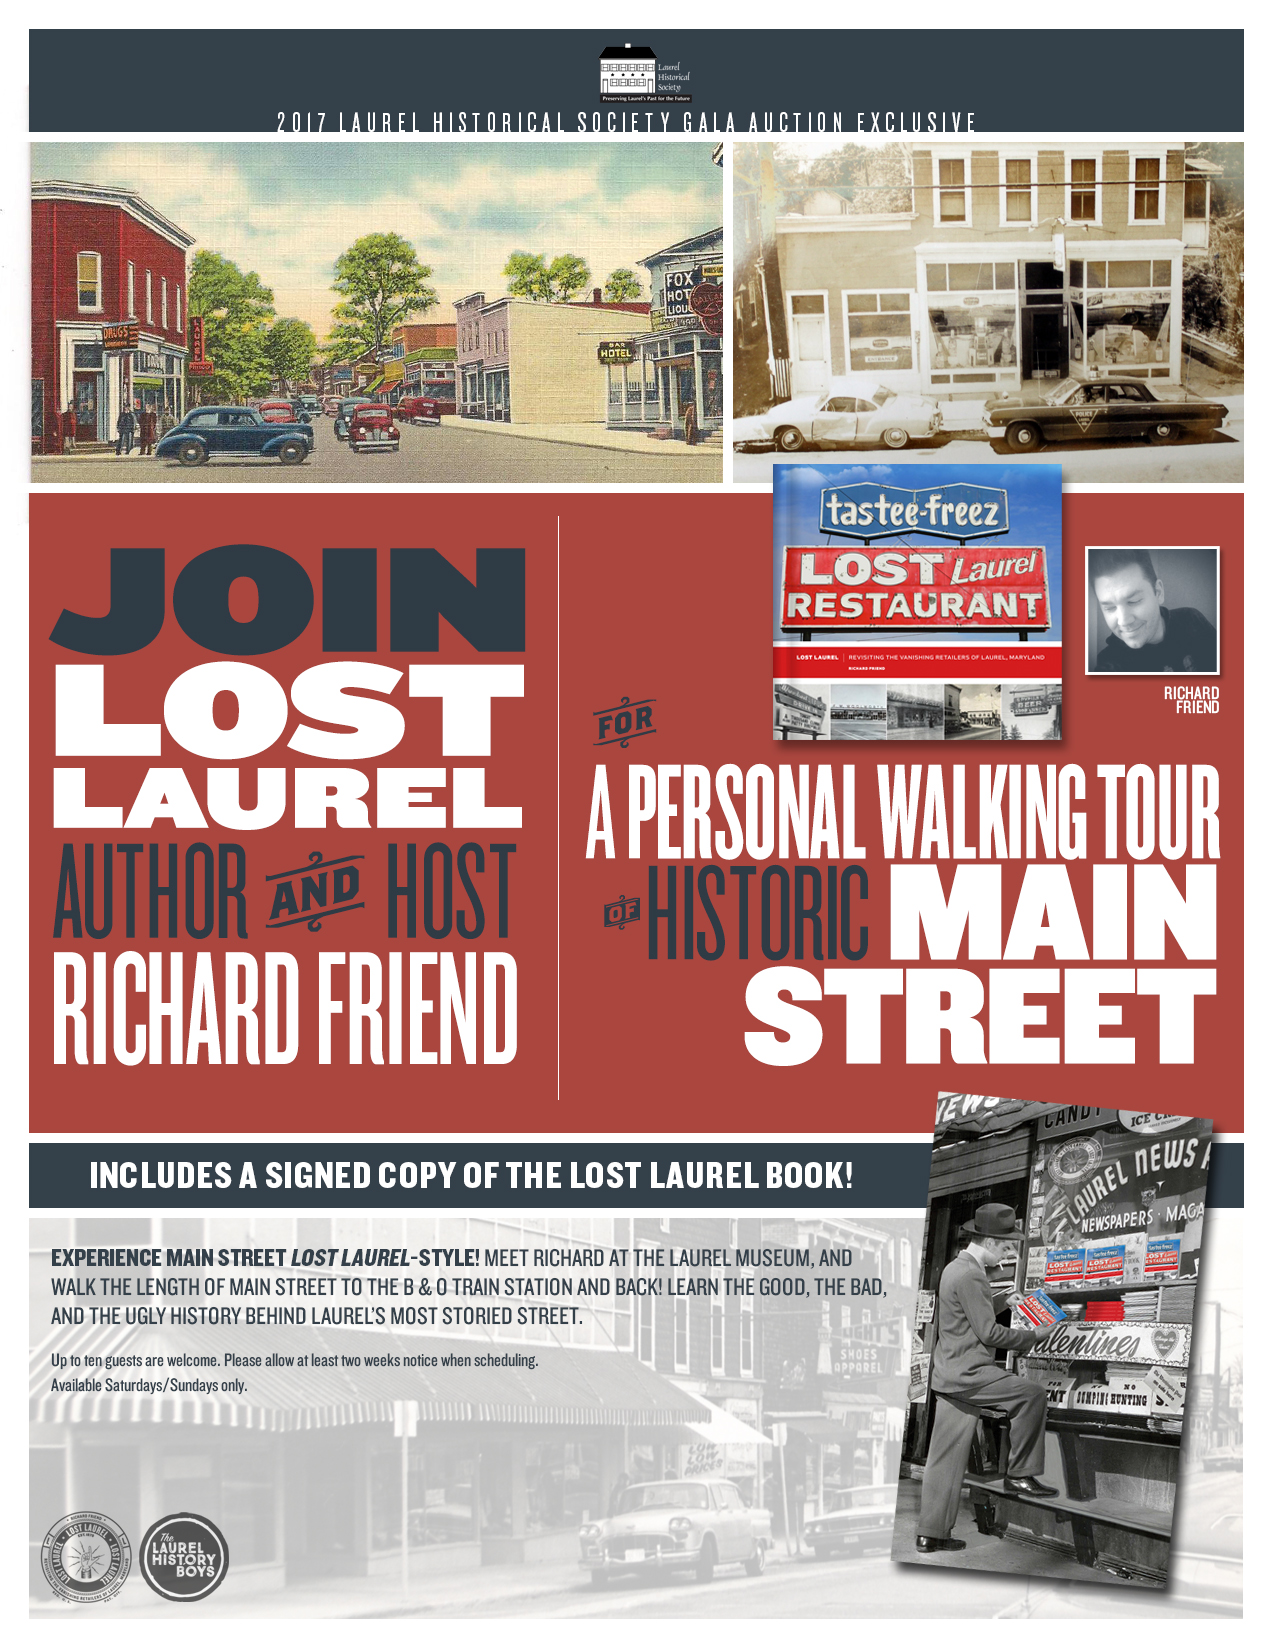 LOST-LAUREL-MAIN-STREET-TOUR-COUPON-2017